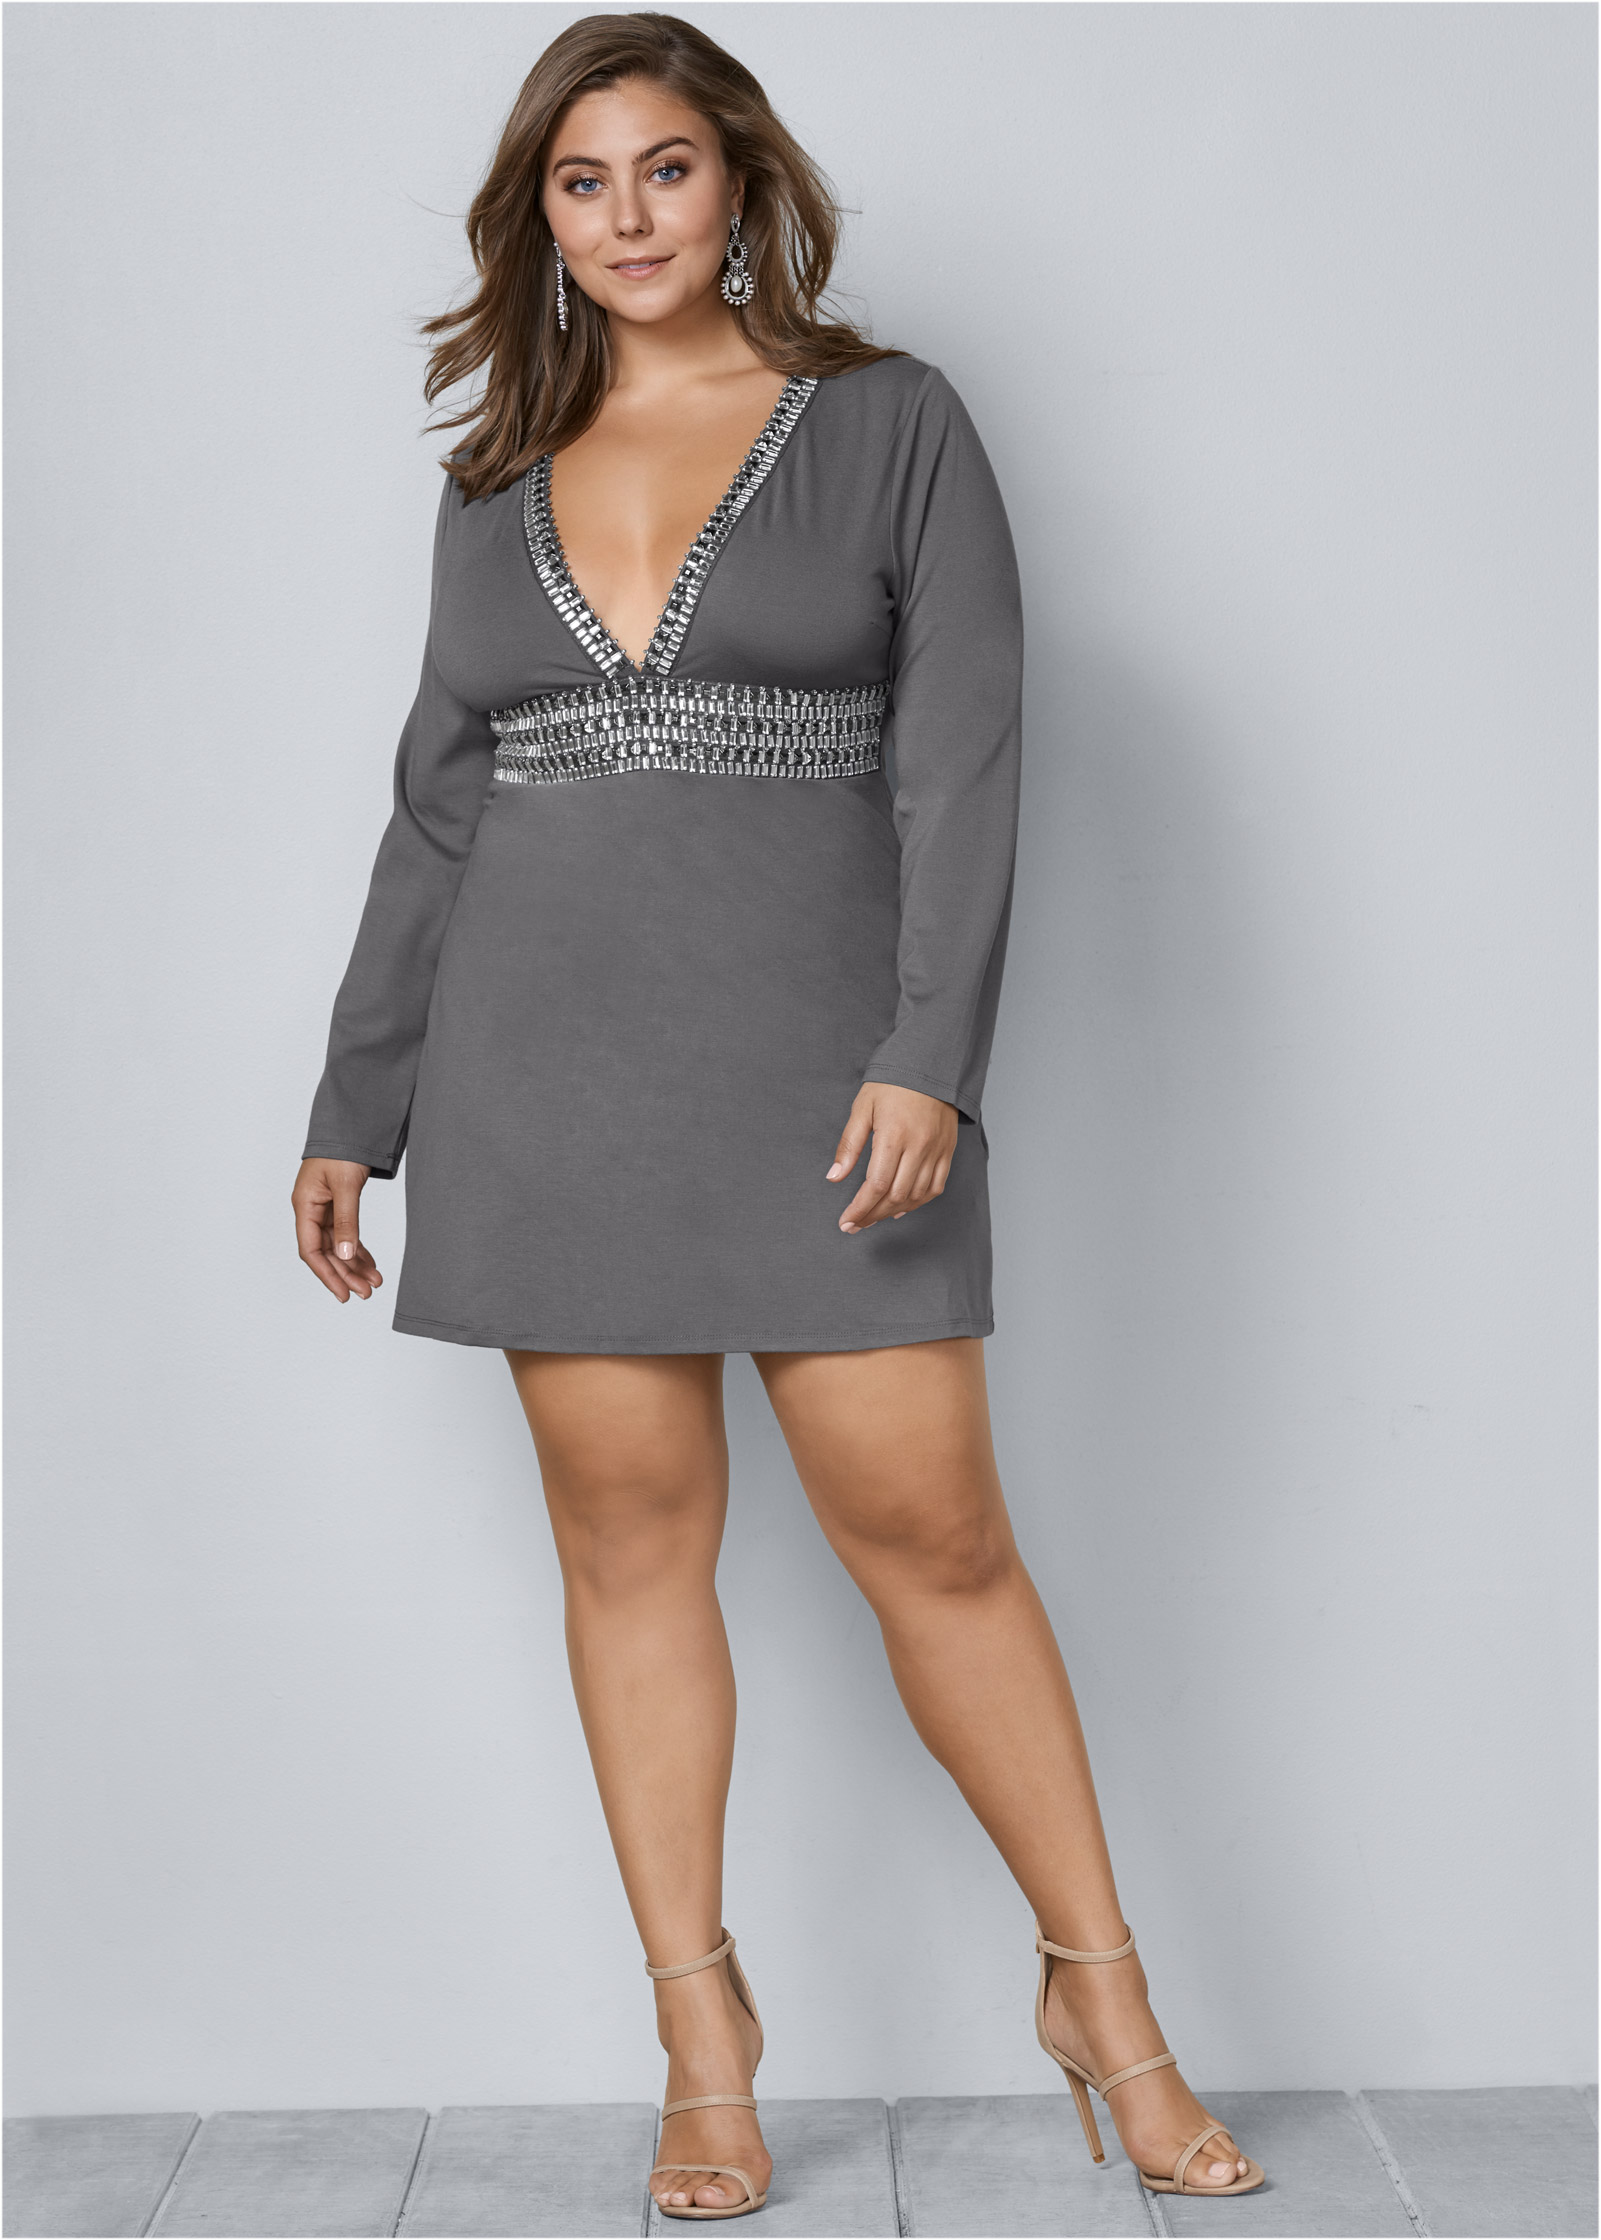 Plus Size Cocktail Separates